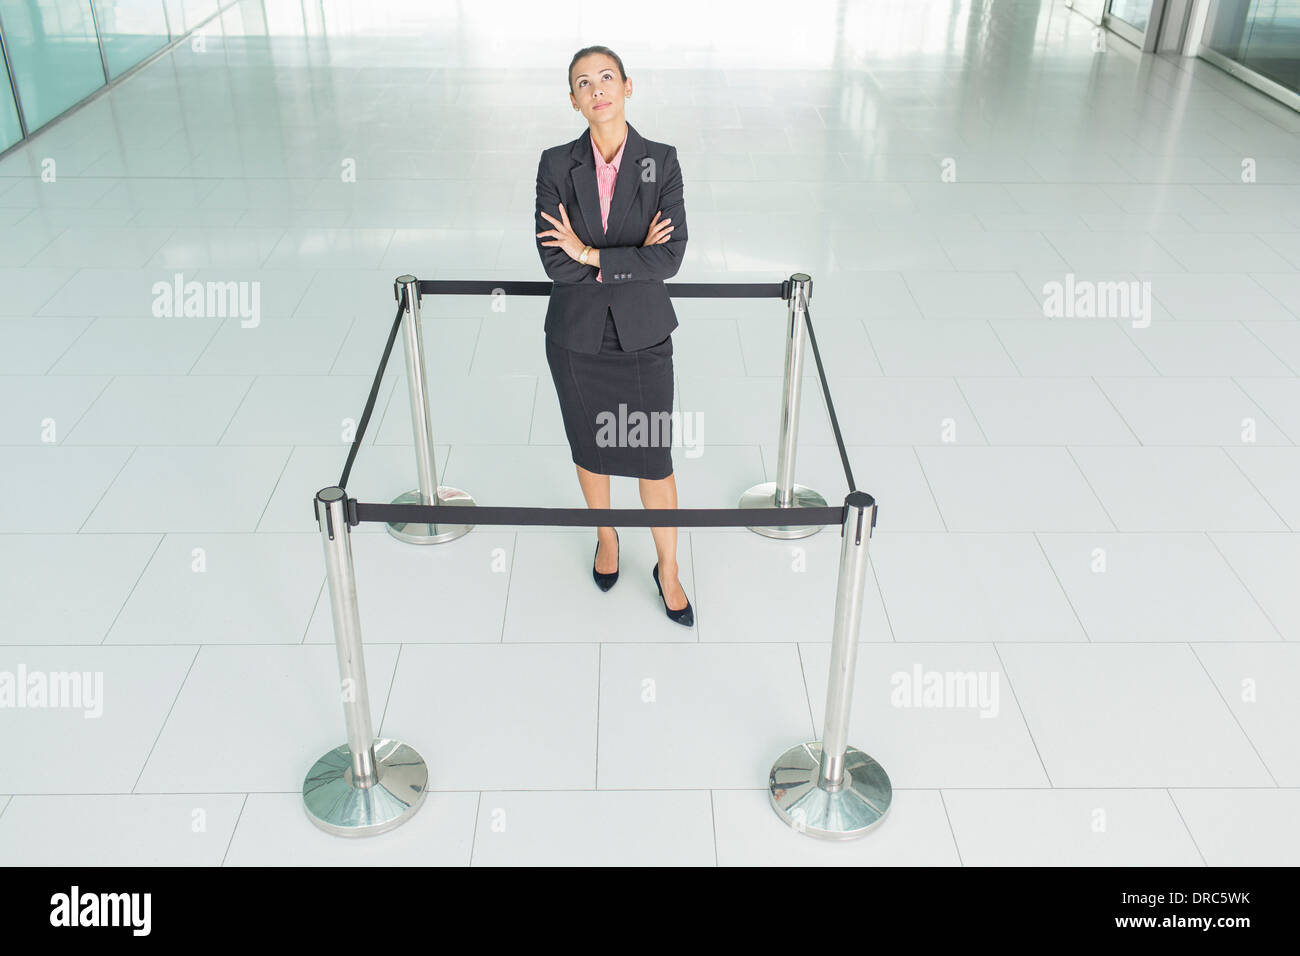 Businesswoman standing in roped-off square Photo Stock